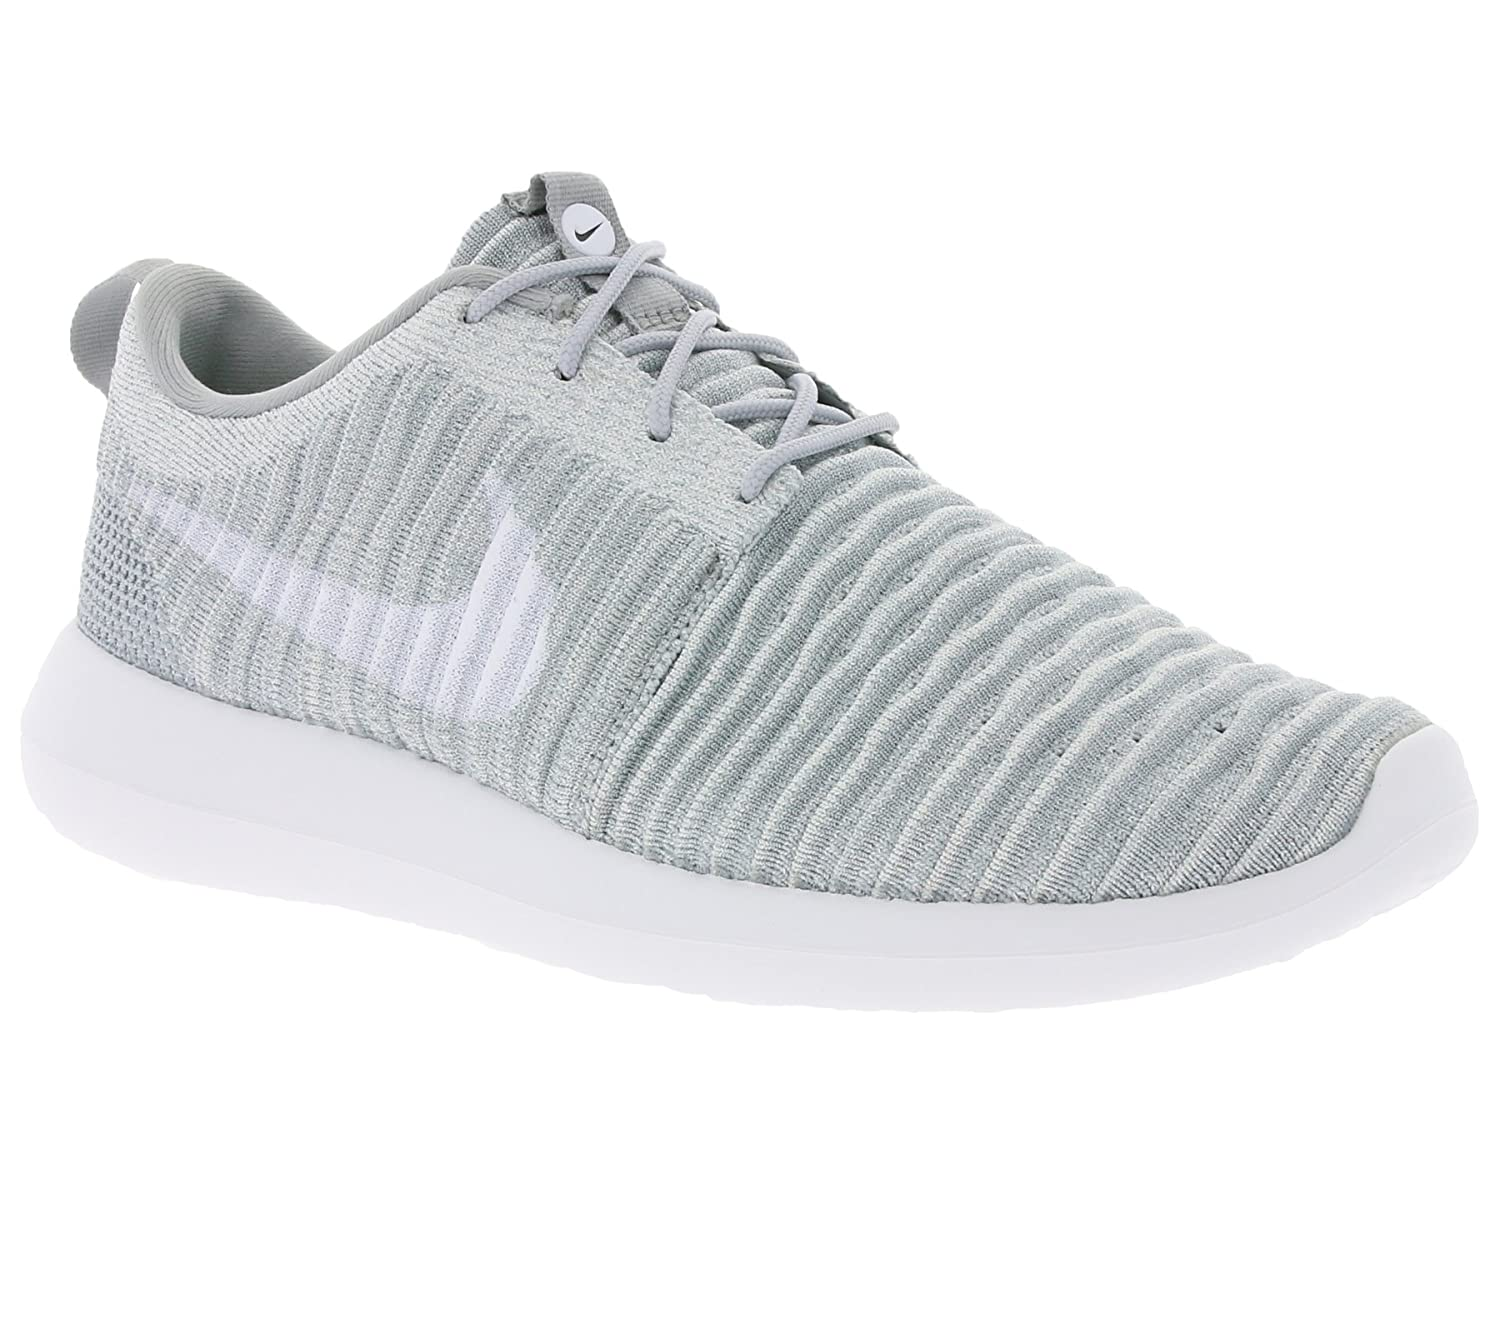 Nike Roshe Two Flyknit Sneaker Trainer  44 EU|Grey/White